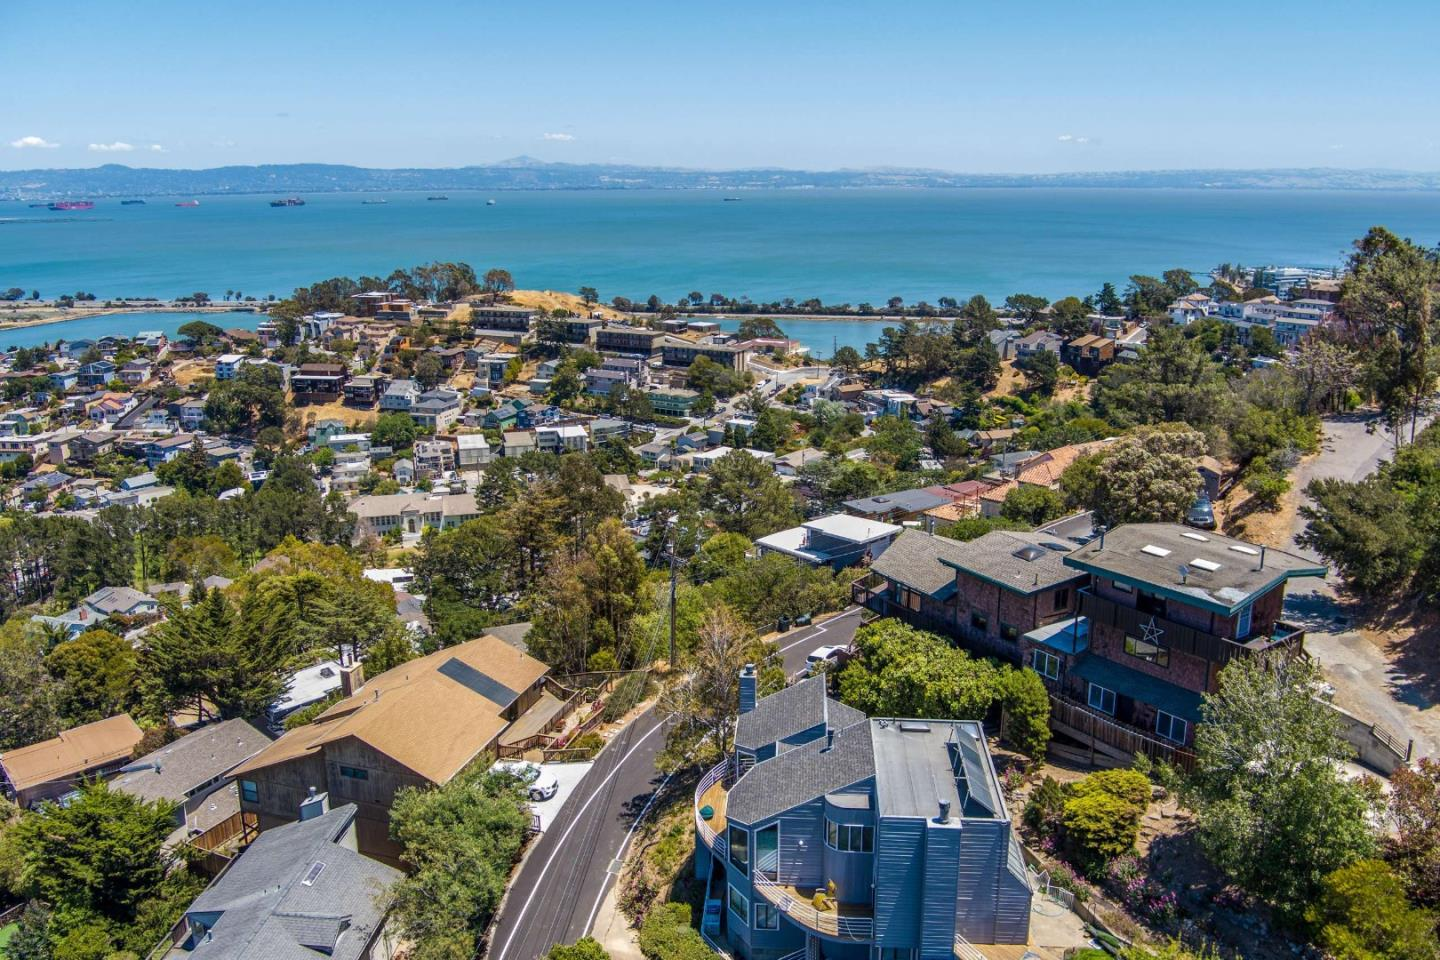 This is it!  Very spacious home with spectacular views of downtown San Francisco, the Bay Bridge, the Bay and San Bruno Mountain.  It features an open floor plan with a spacious living room/dining combination. There is a beautifully remodeled master suite upstairs.  The recreation room is huge and has a 1/2 bath, which could easily be turned into a full bath.  Many skylights.  Mostly wood floors.  Additionally, there are two separate spaces. Both of them have amazing views and are in wonderful condition.  Large 2 car garage with extra storage, as well as 6 other parking spaces around the property.  Waterfalls, pond, hot tub overlooking the bay and 3 decks, plus a yard.  One of the best things is that even though you are on top of the world, there are not tons of stairs and no stairs between the garage and the main house.  There are beautifully designed (not permitted) plans to connect all of the home together.  Don't miss this truly special property!